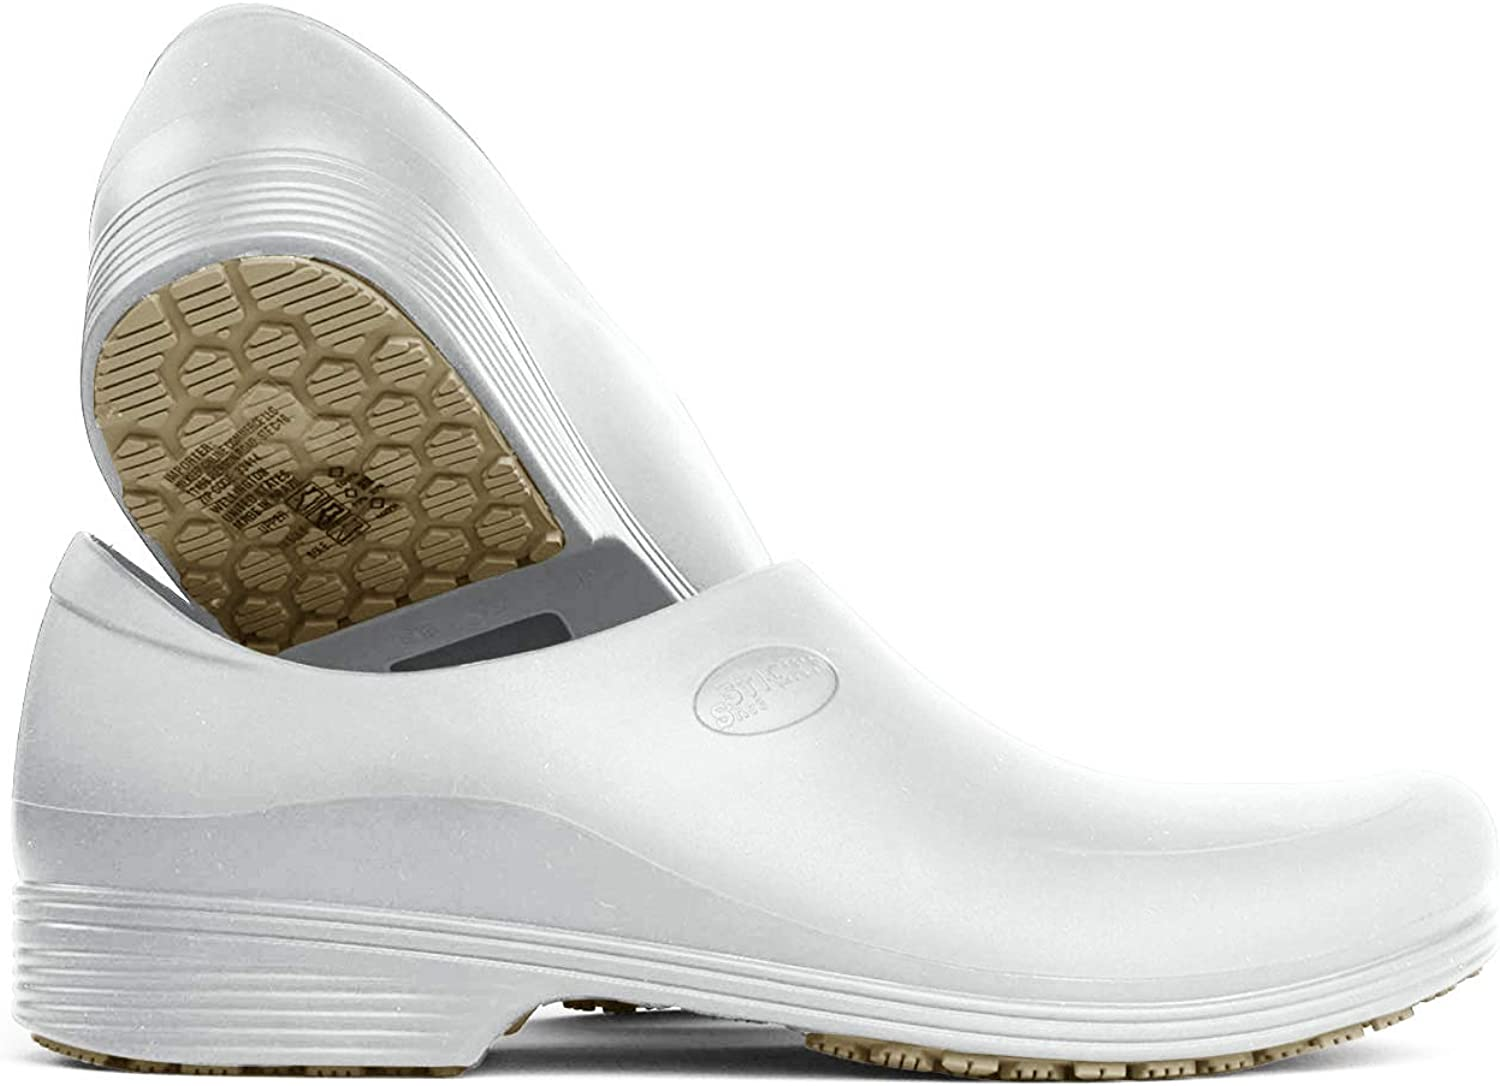 Comfortable Work Shoes for Men Shoes Medical Shoes Chef Shoes StickyPRO Waterproof Slip Resistant